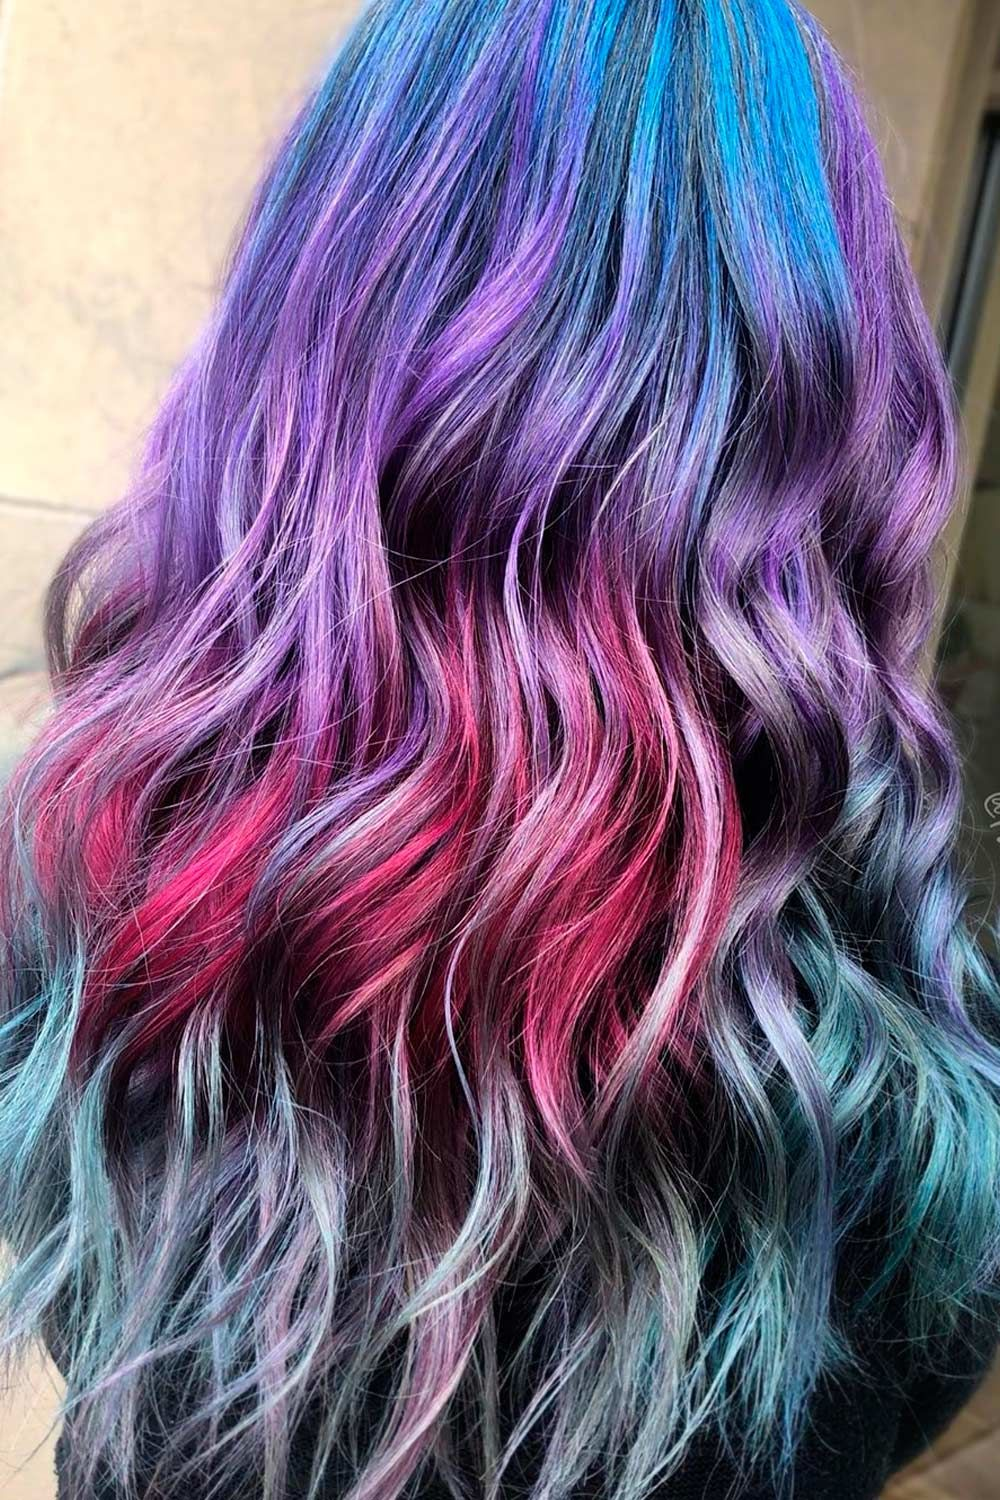 Long Galaxy Hair Ideas